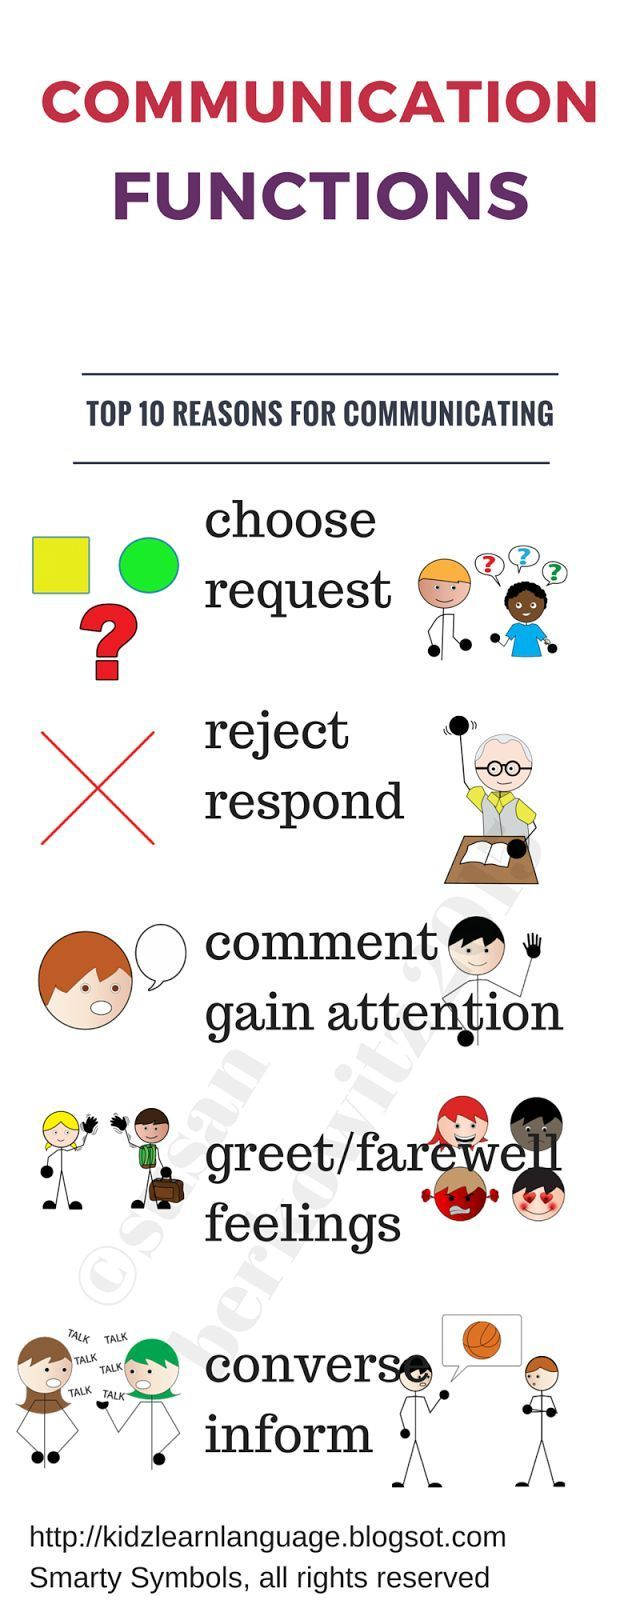 Kidz Learn Language: What's in a Word? Top 10 Communication Functions.